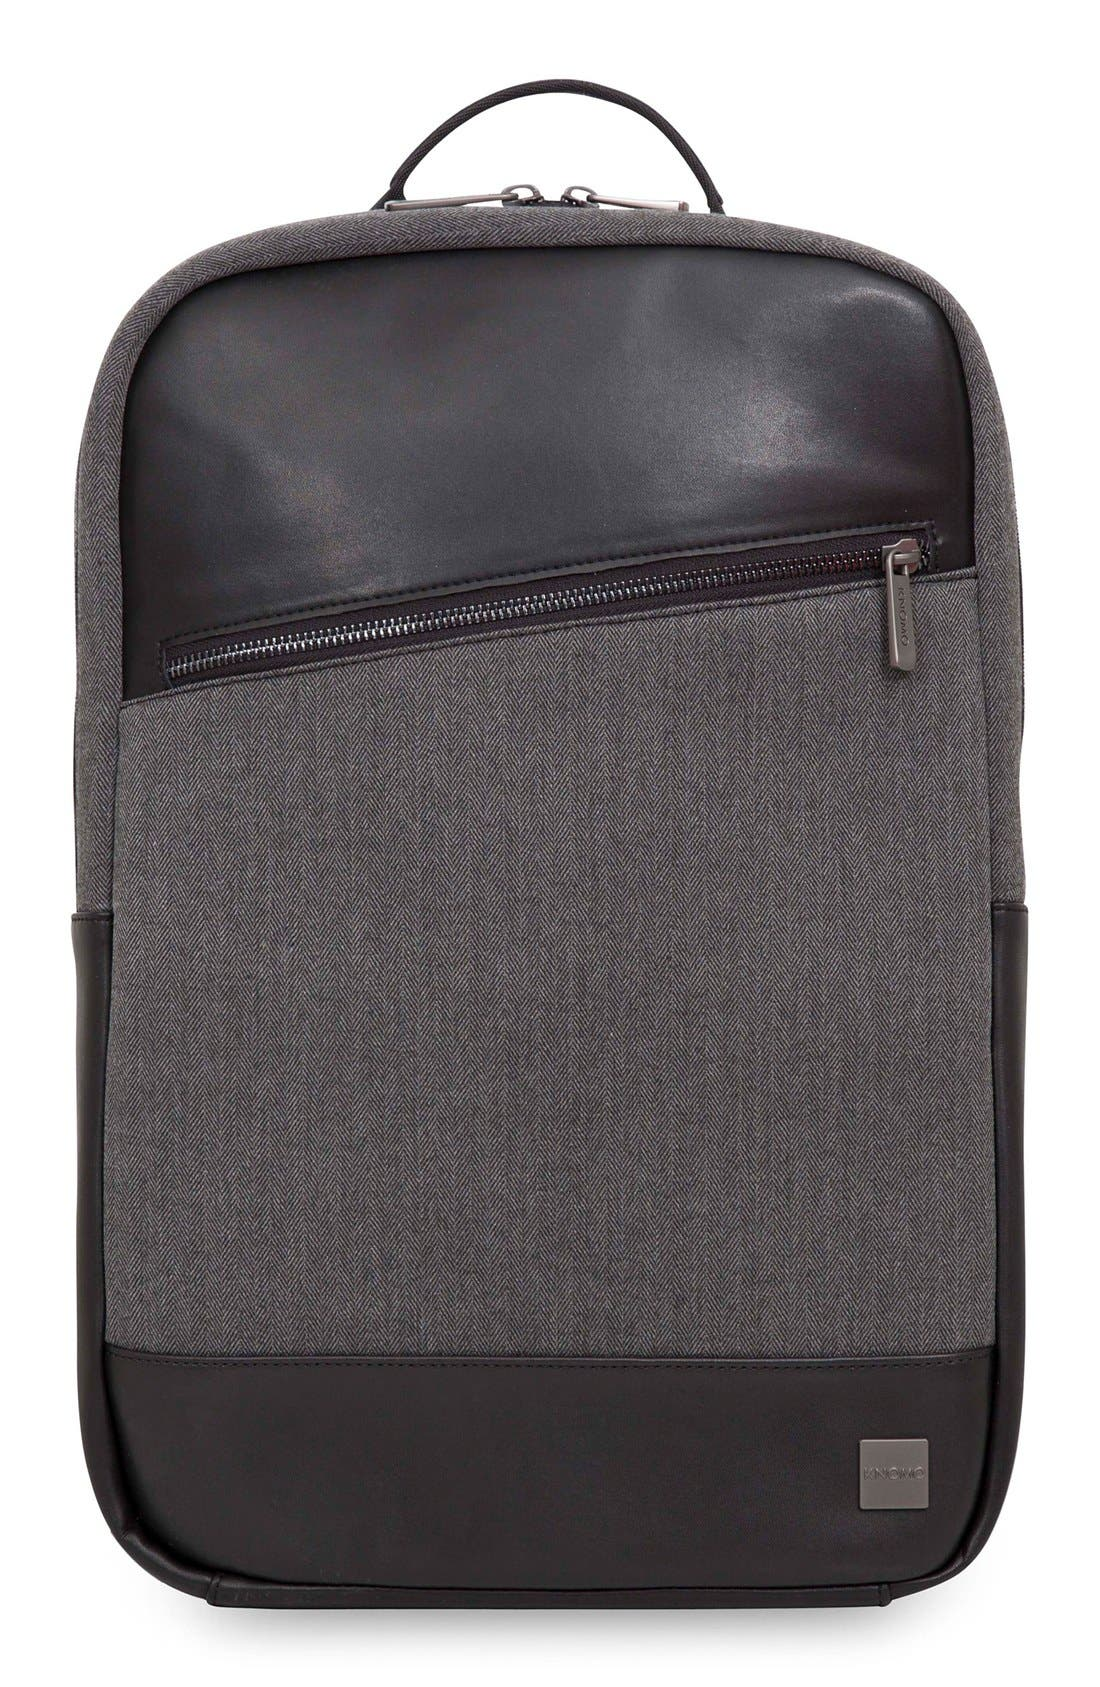 Holborn Southampton Backpack,                             Main thumbnail 1, color,                             Grey